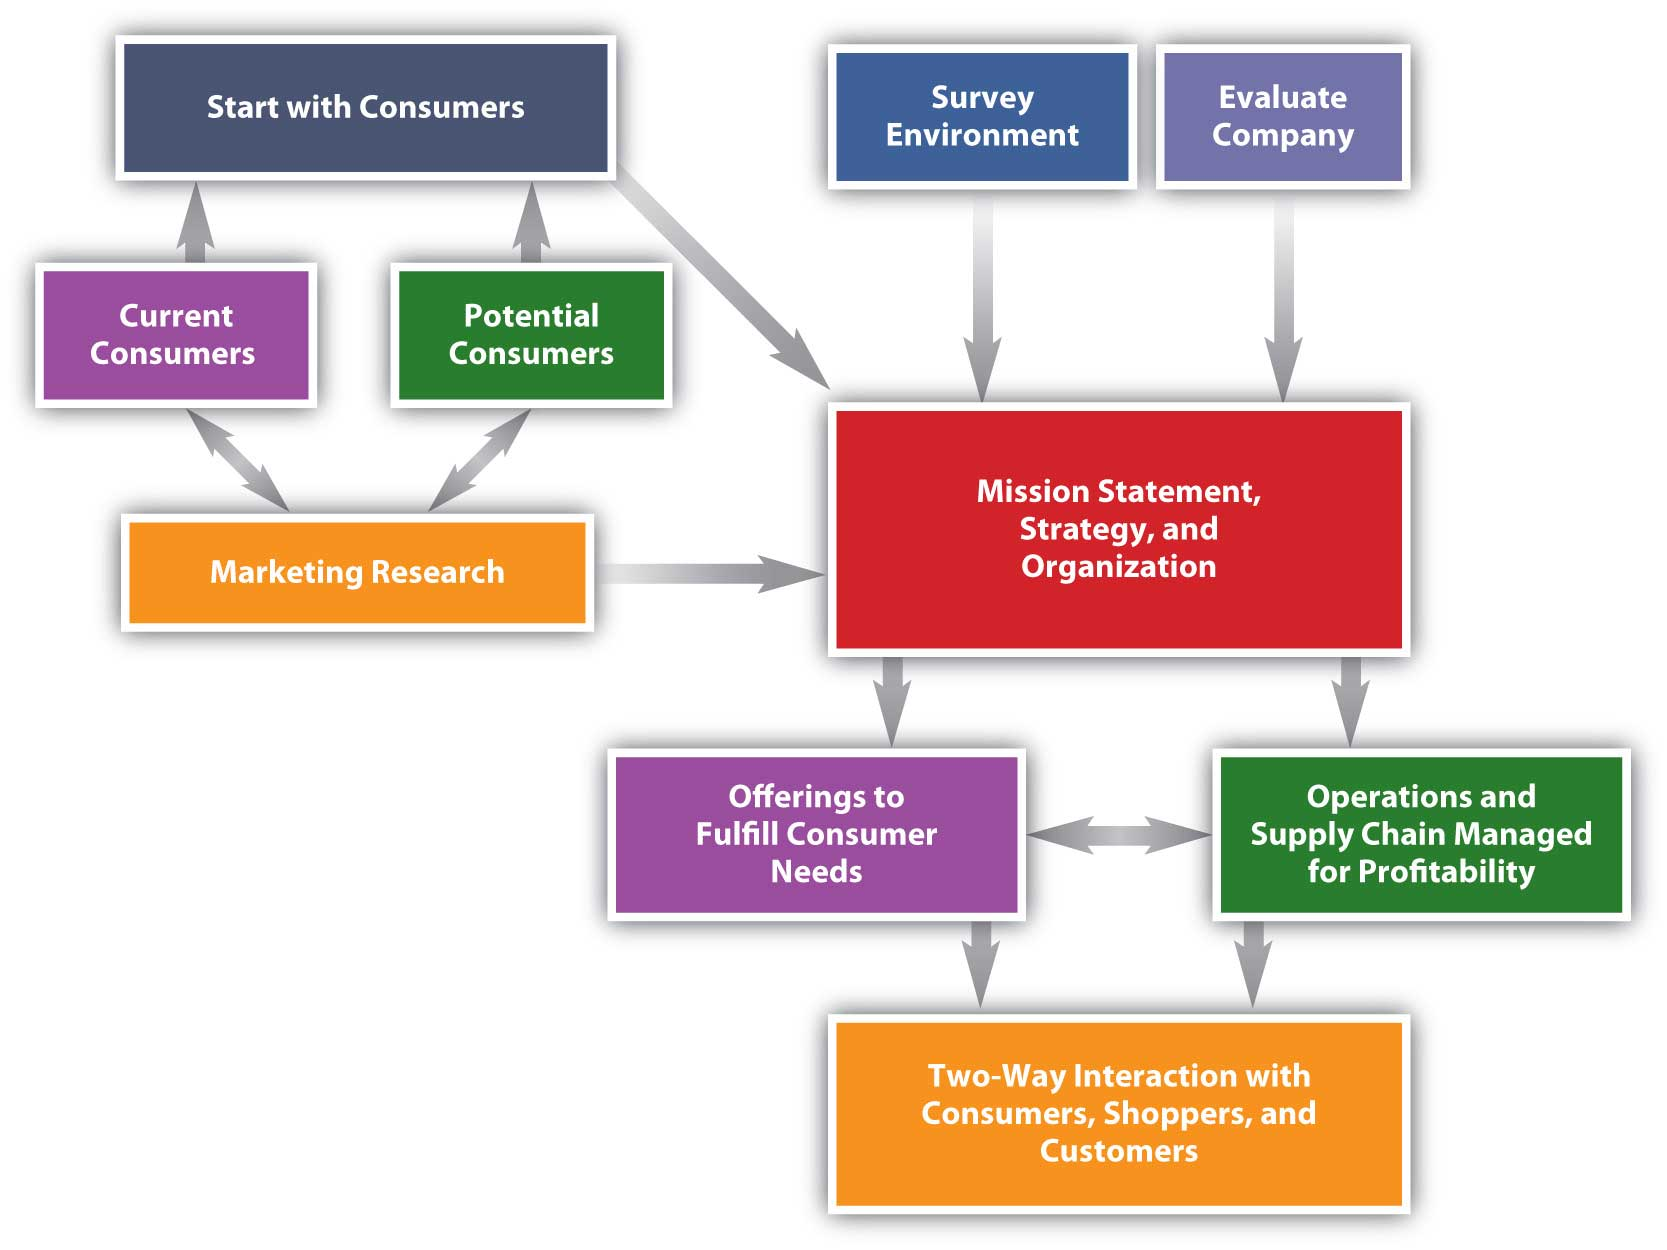 Steps in Creating a Marketing Plan